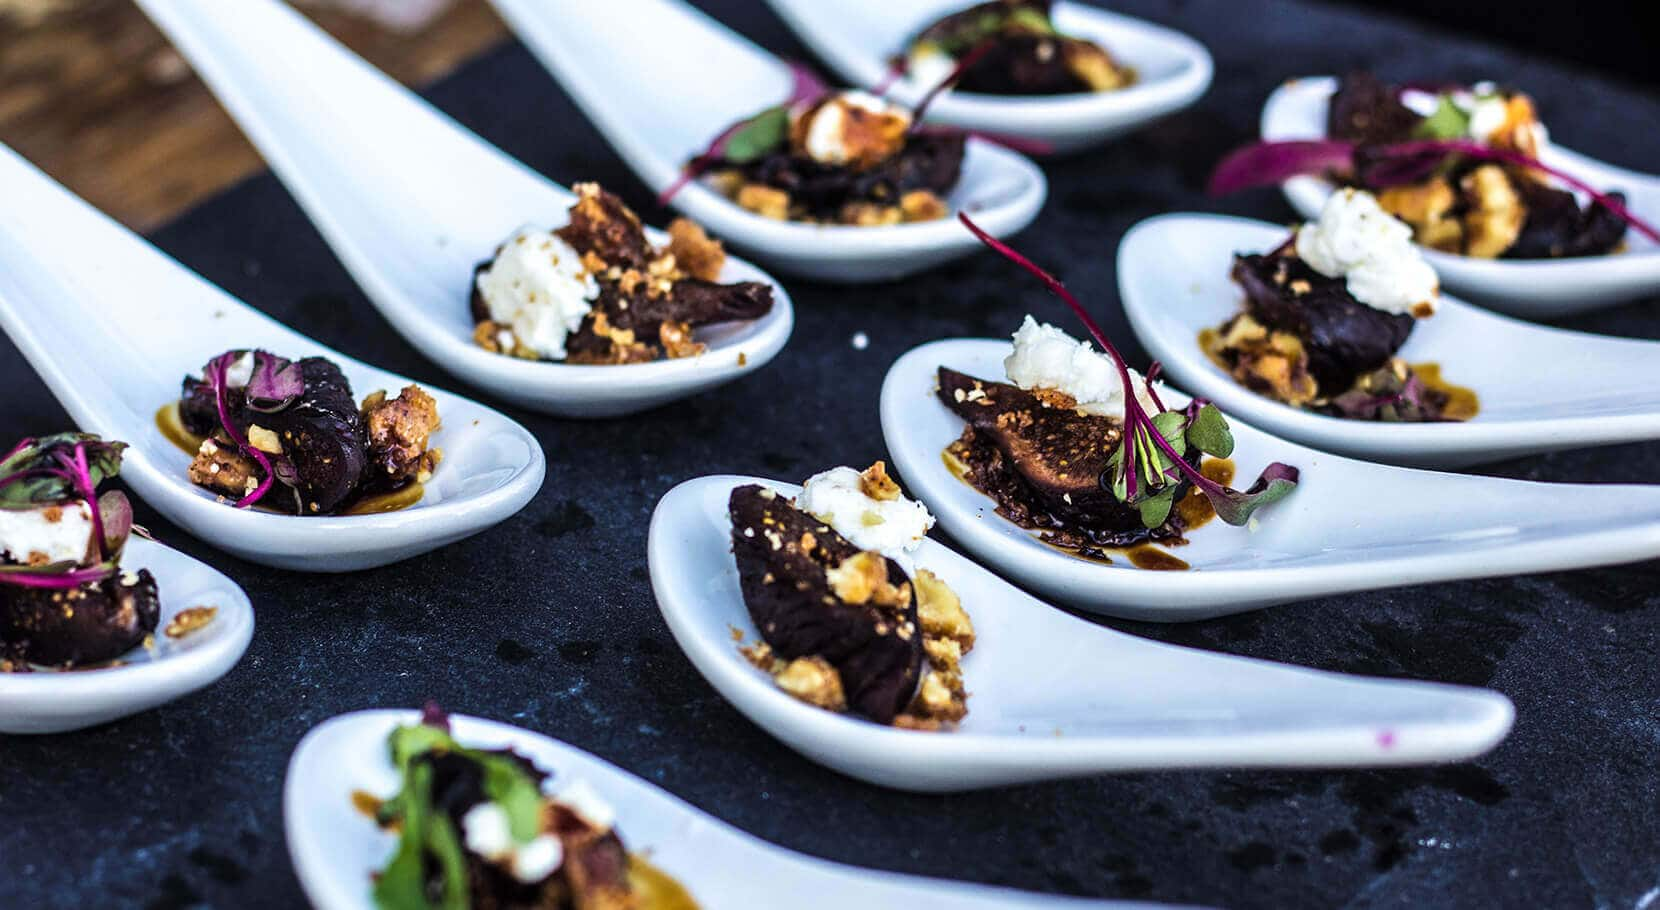 Catering Services Montreal